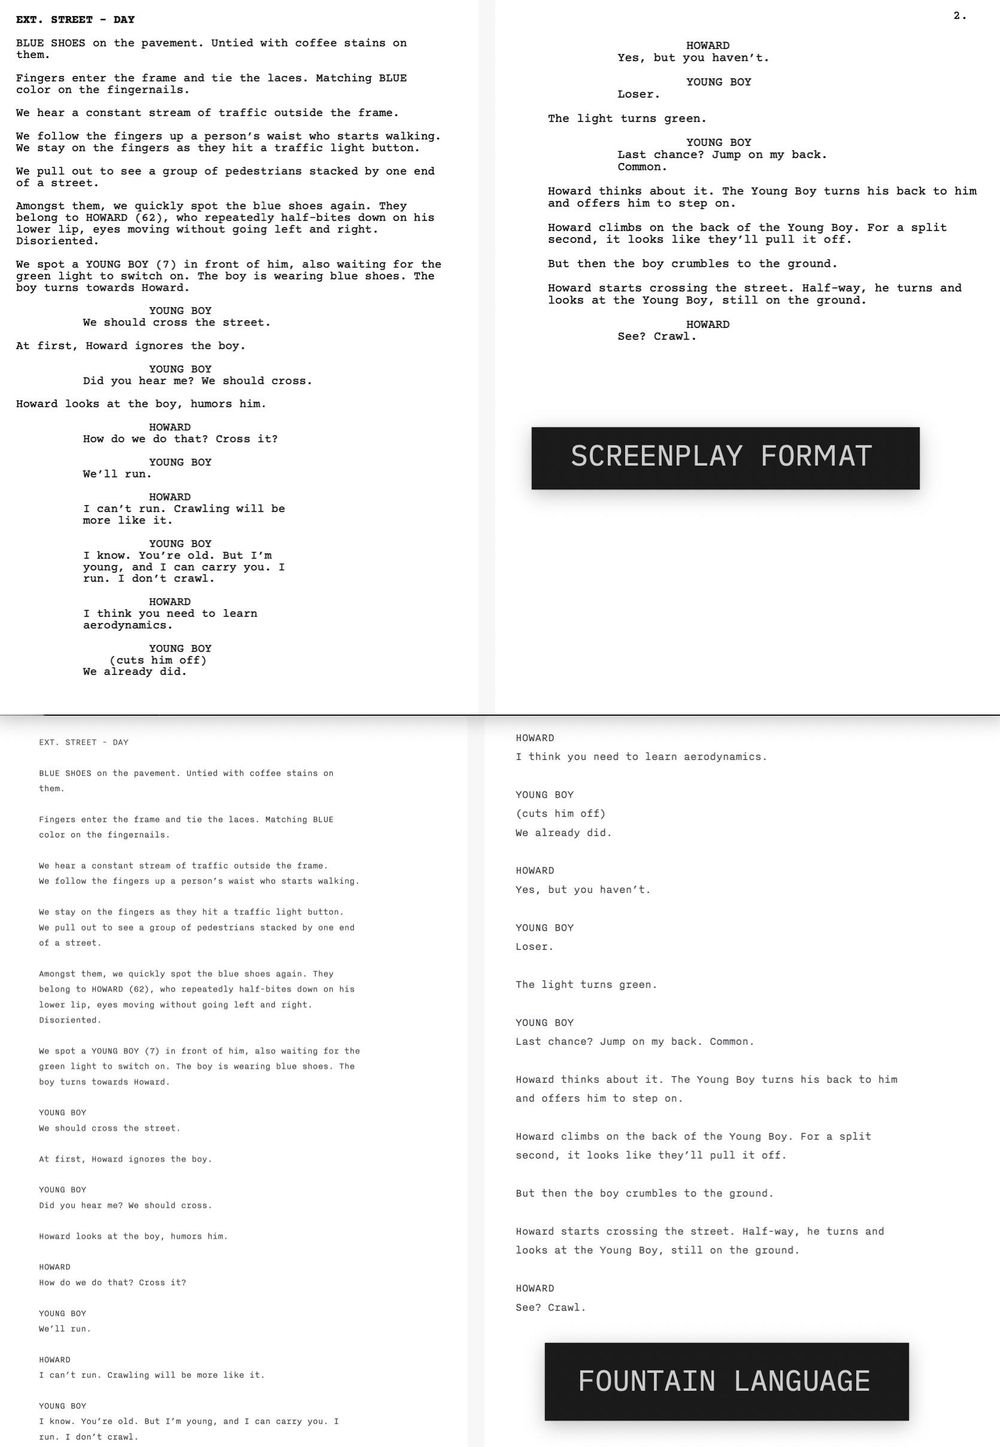 Write Your Screenplay using Fountain - image 1 - student project